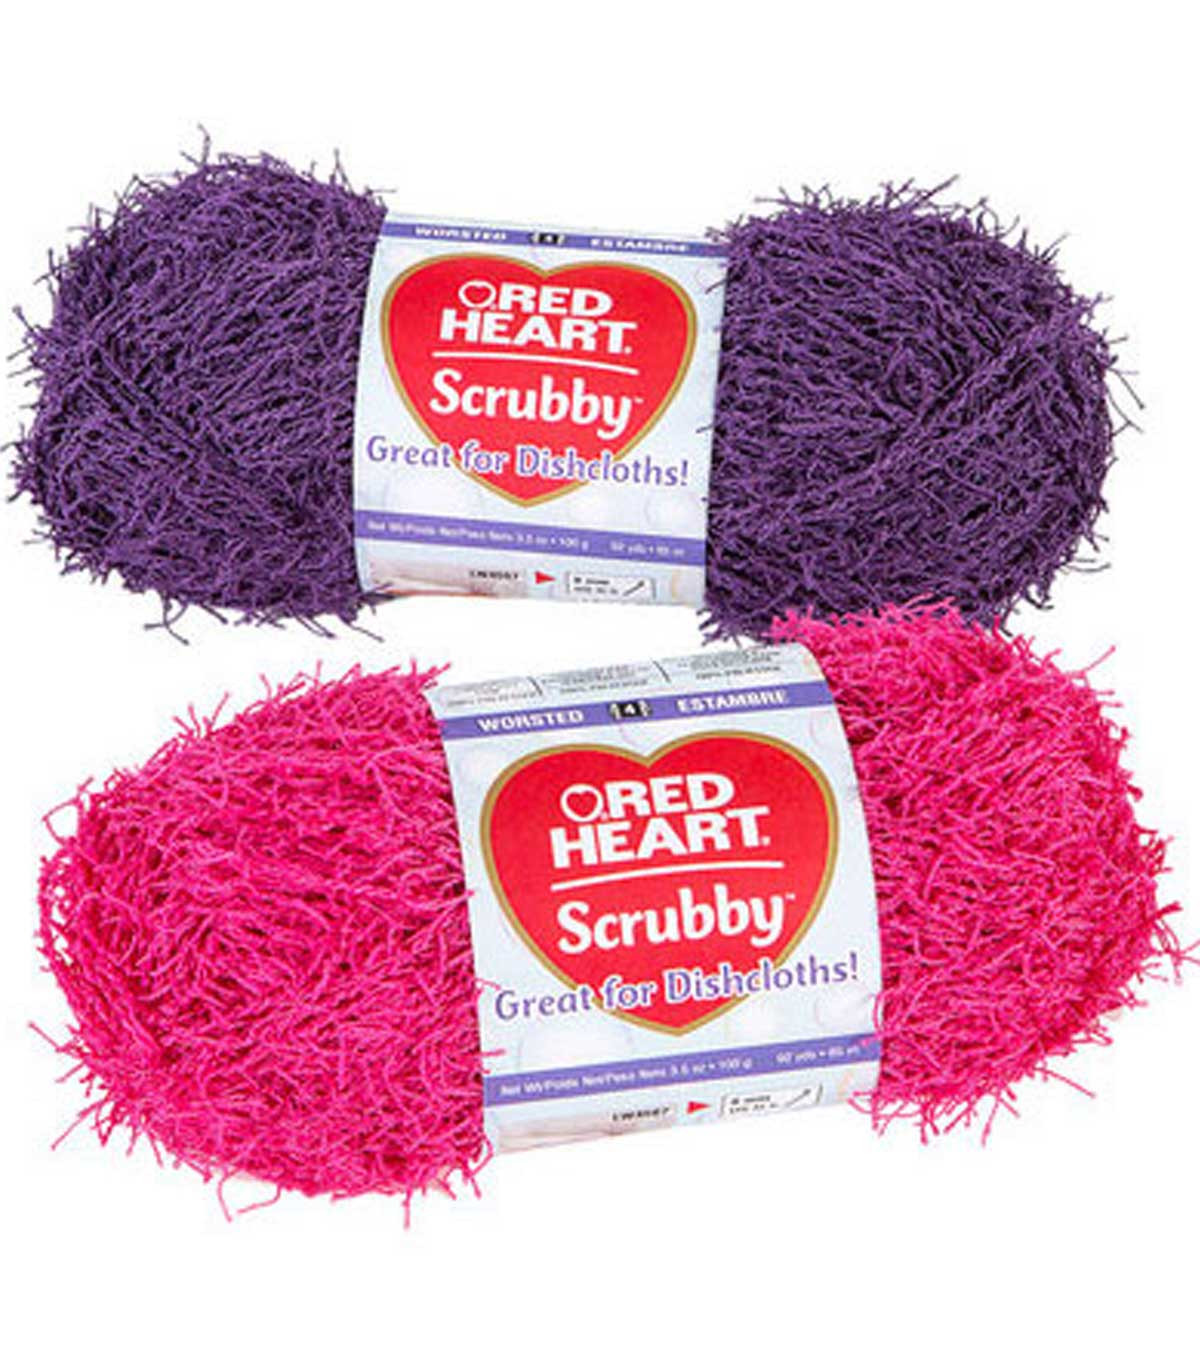 Awesome Red Heart Scrubby Yarn Heart Yarn Of Brilliant 50 Images Heart Yarn